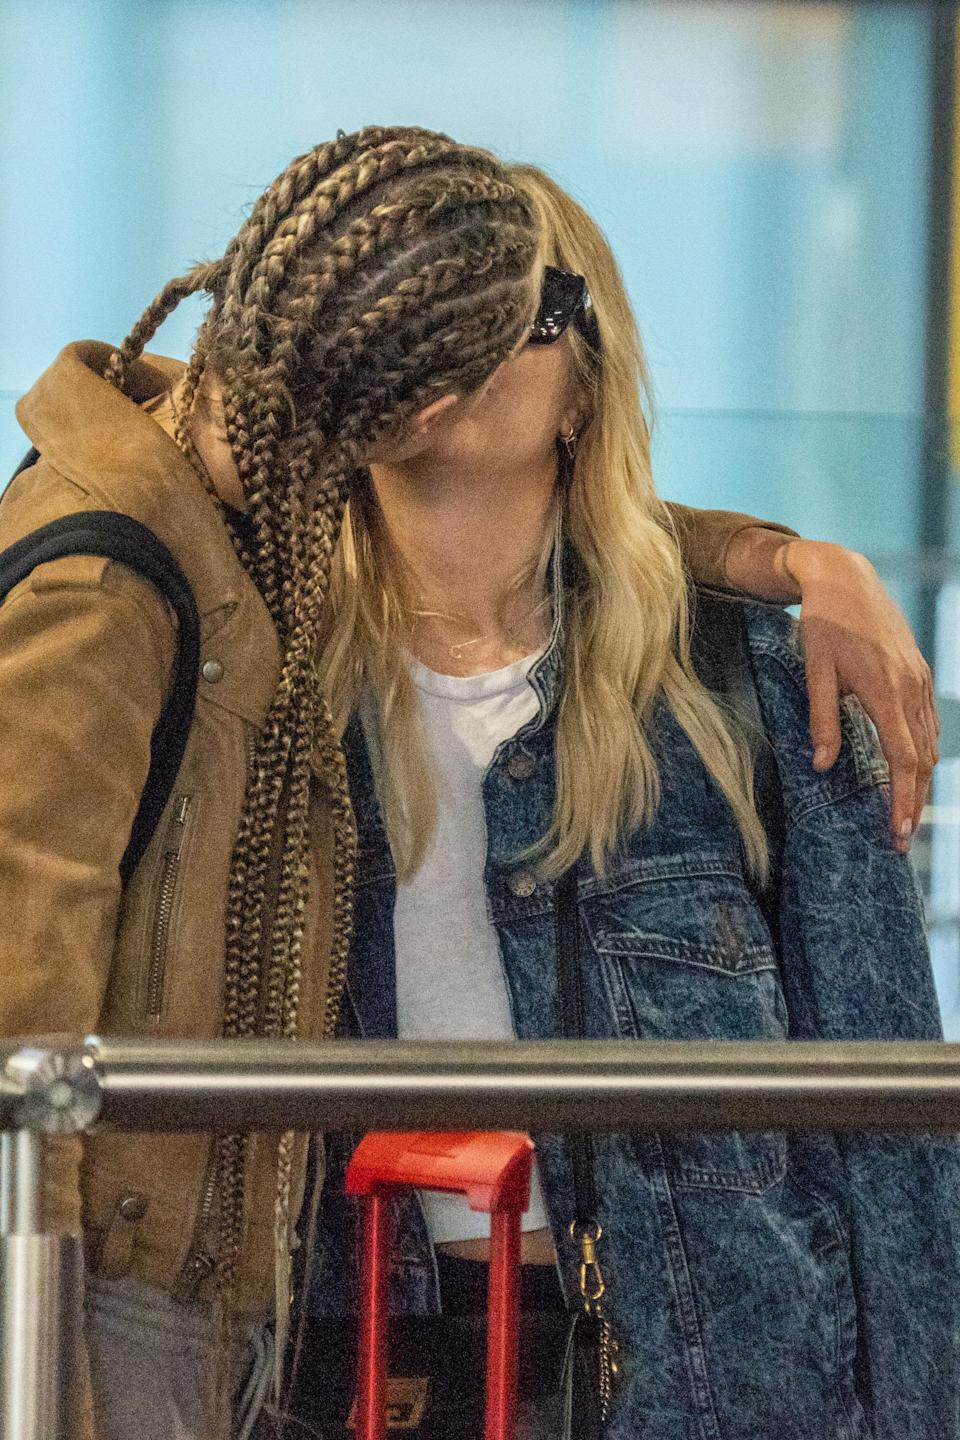 Cara Delevingne and Ashley Benson took their relationship public, kissing outside London's Heathrow Airport. (Photo: SplashNews)